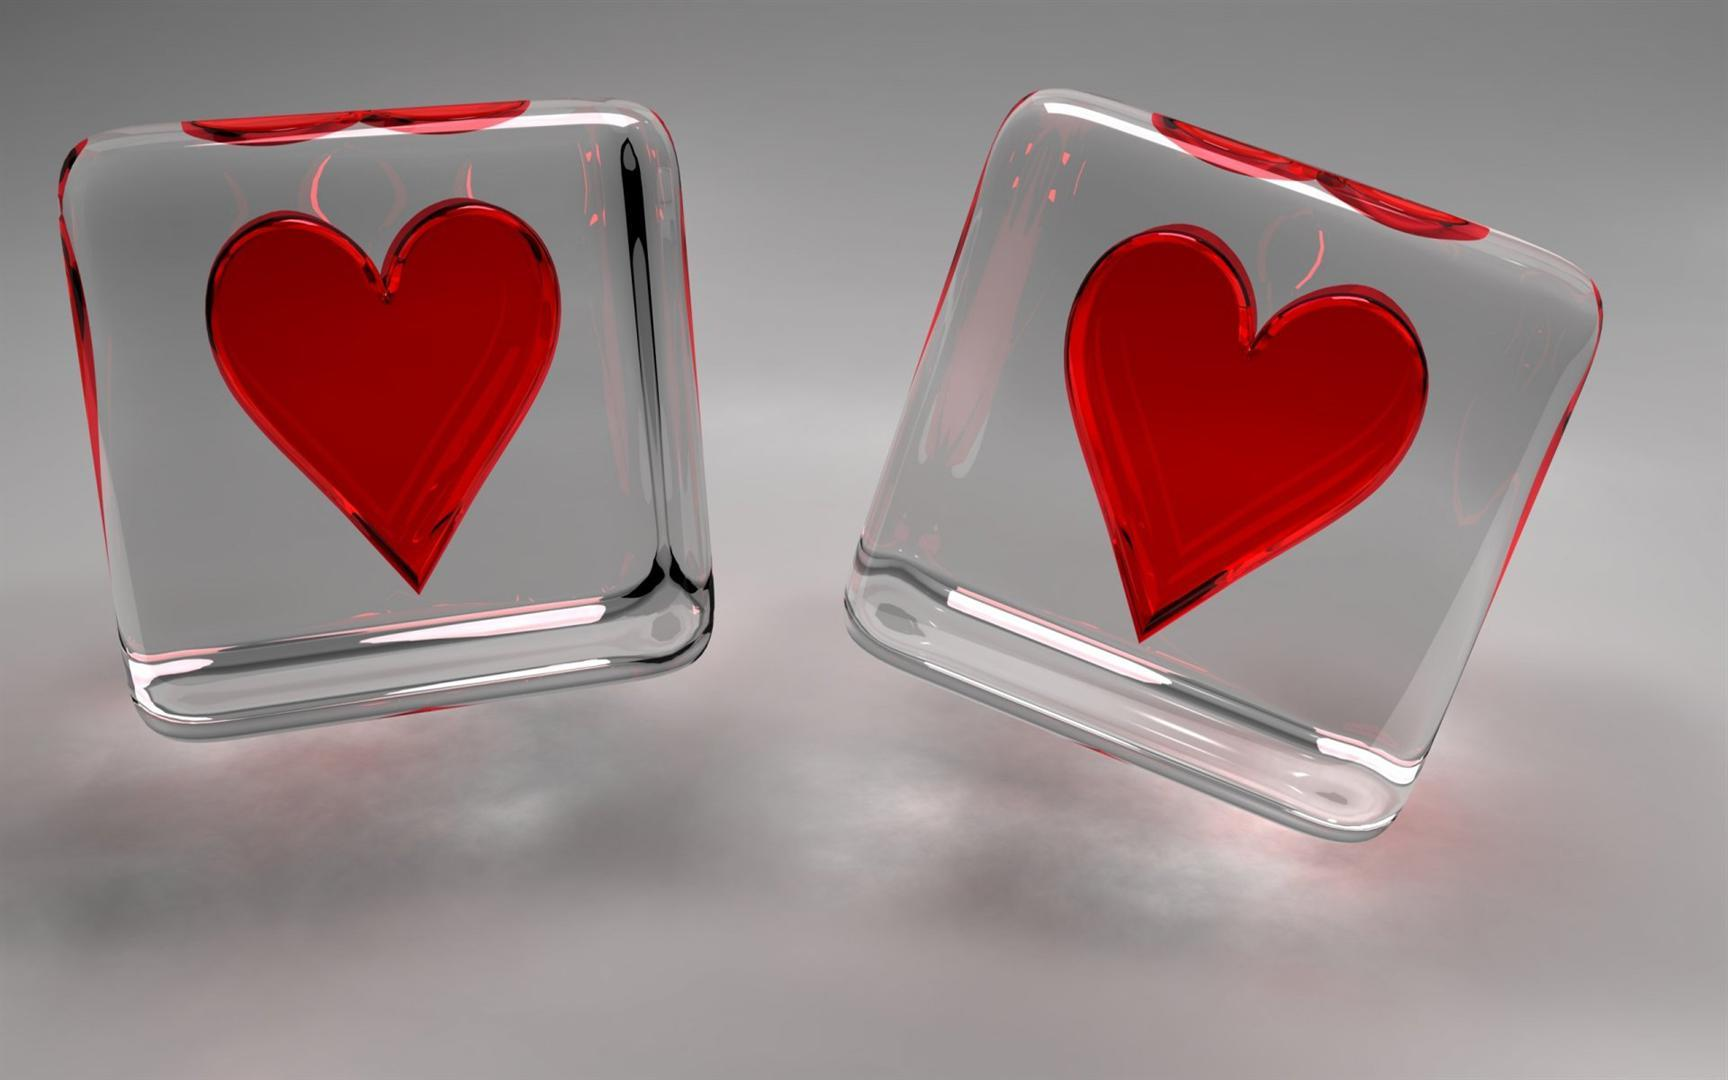 Love Images Hd 3d Wallpaper : 3d Love Wallpapers - Wallpaper cave